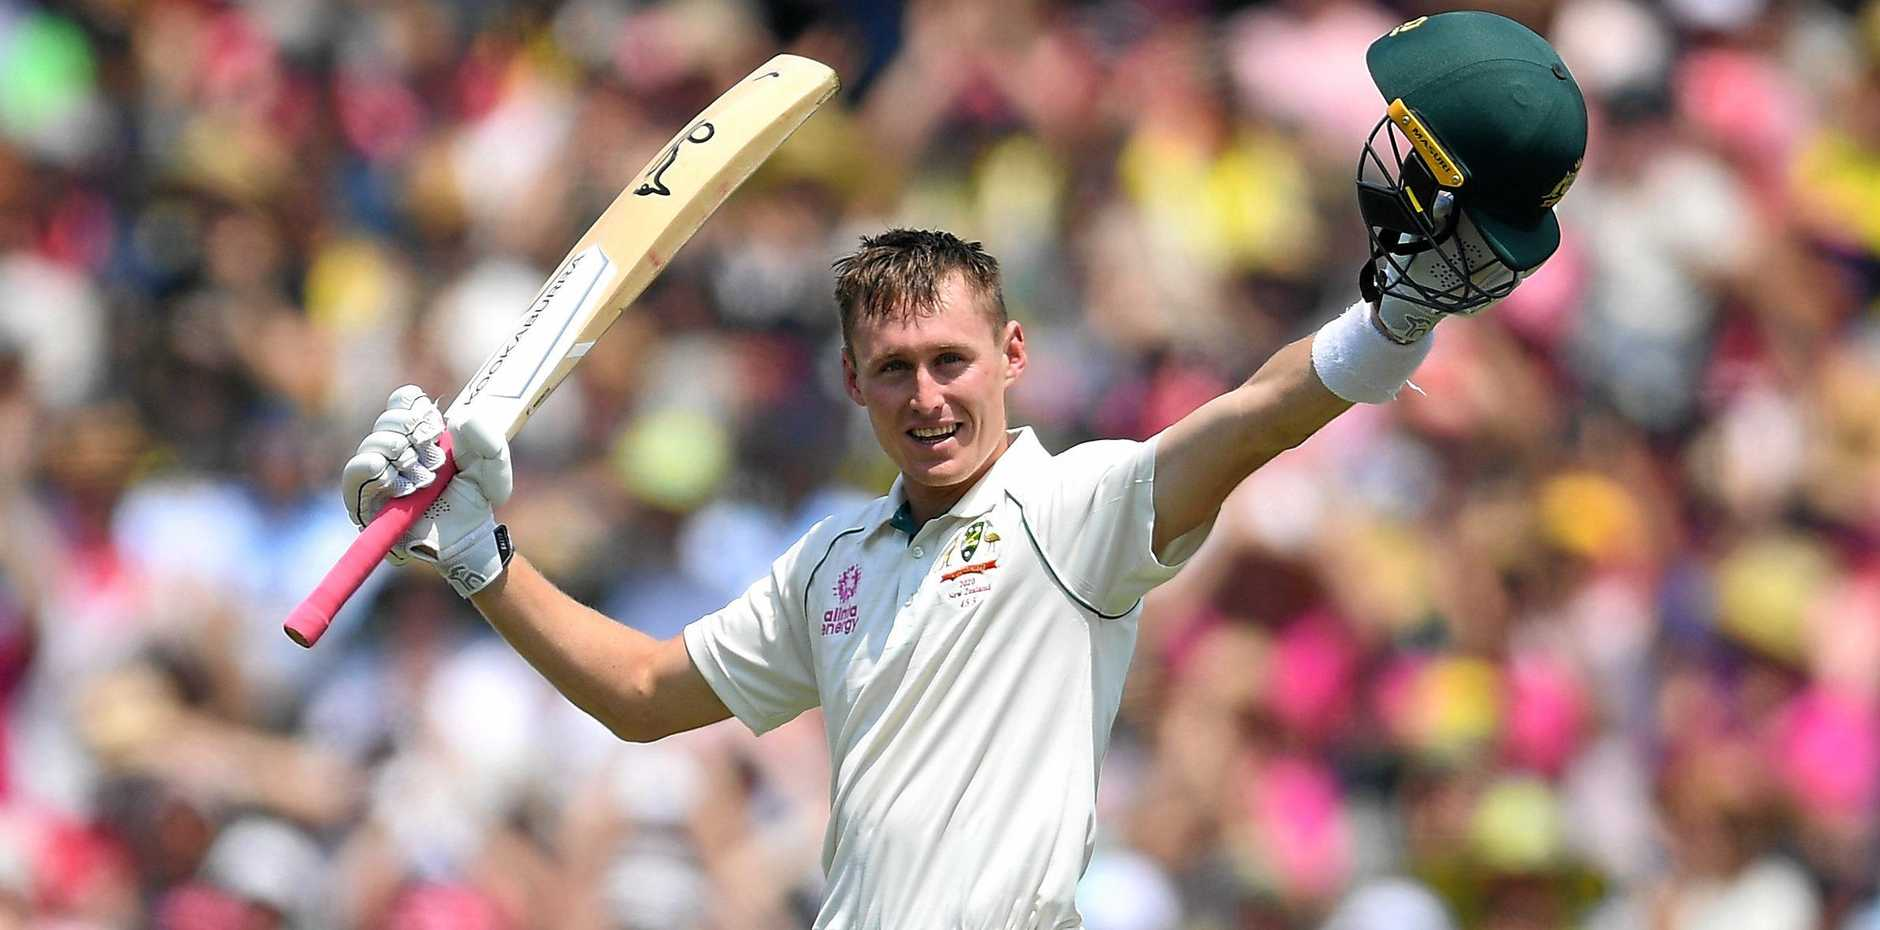 Marnus Labuschagne acknowledges the crowd's applause after reaching 200. Australia then lost a flurry of wickets to be bowled out for 454 with Neil Wagner claiming three wickets. Picture: Dan Himbrechts/AAP